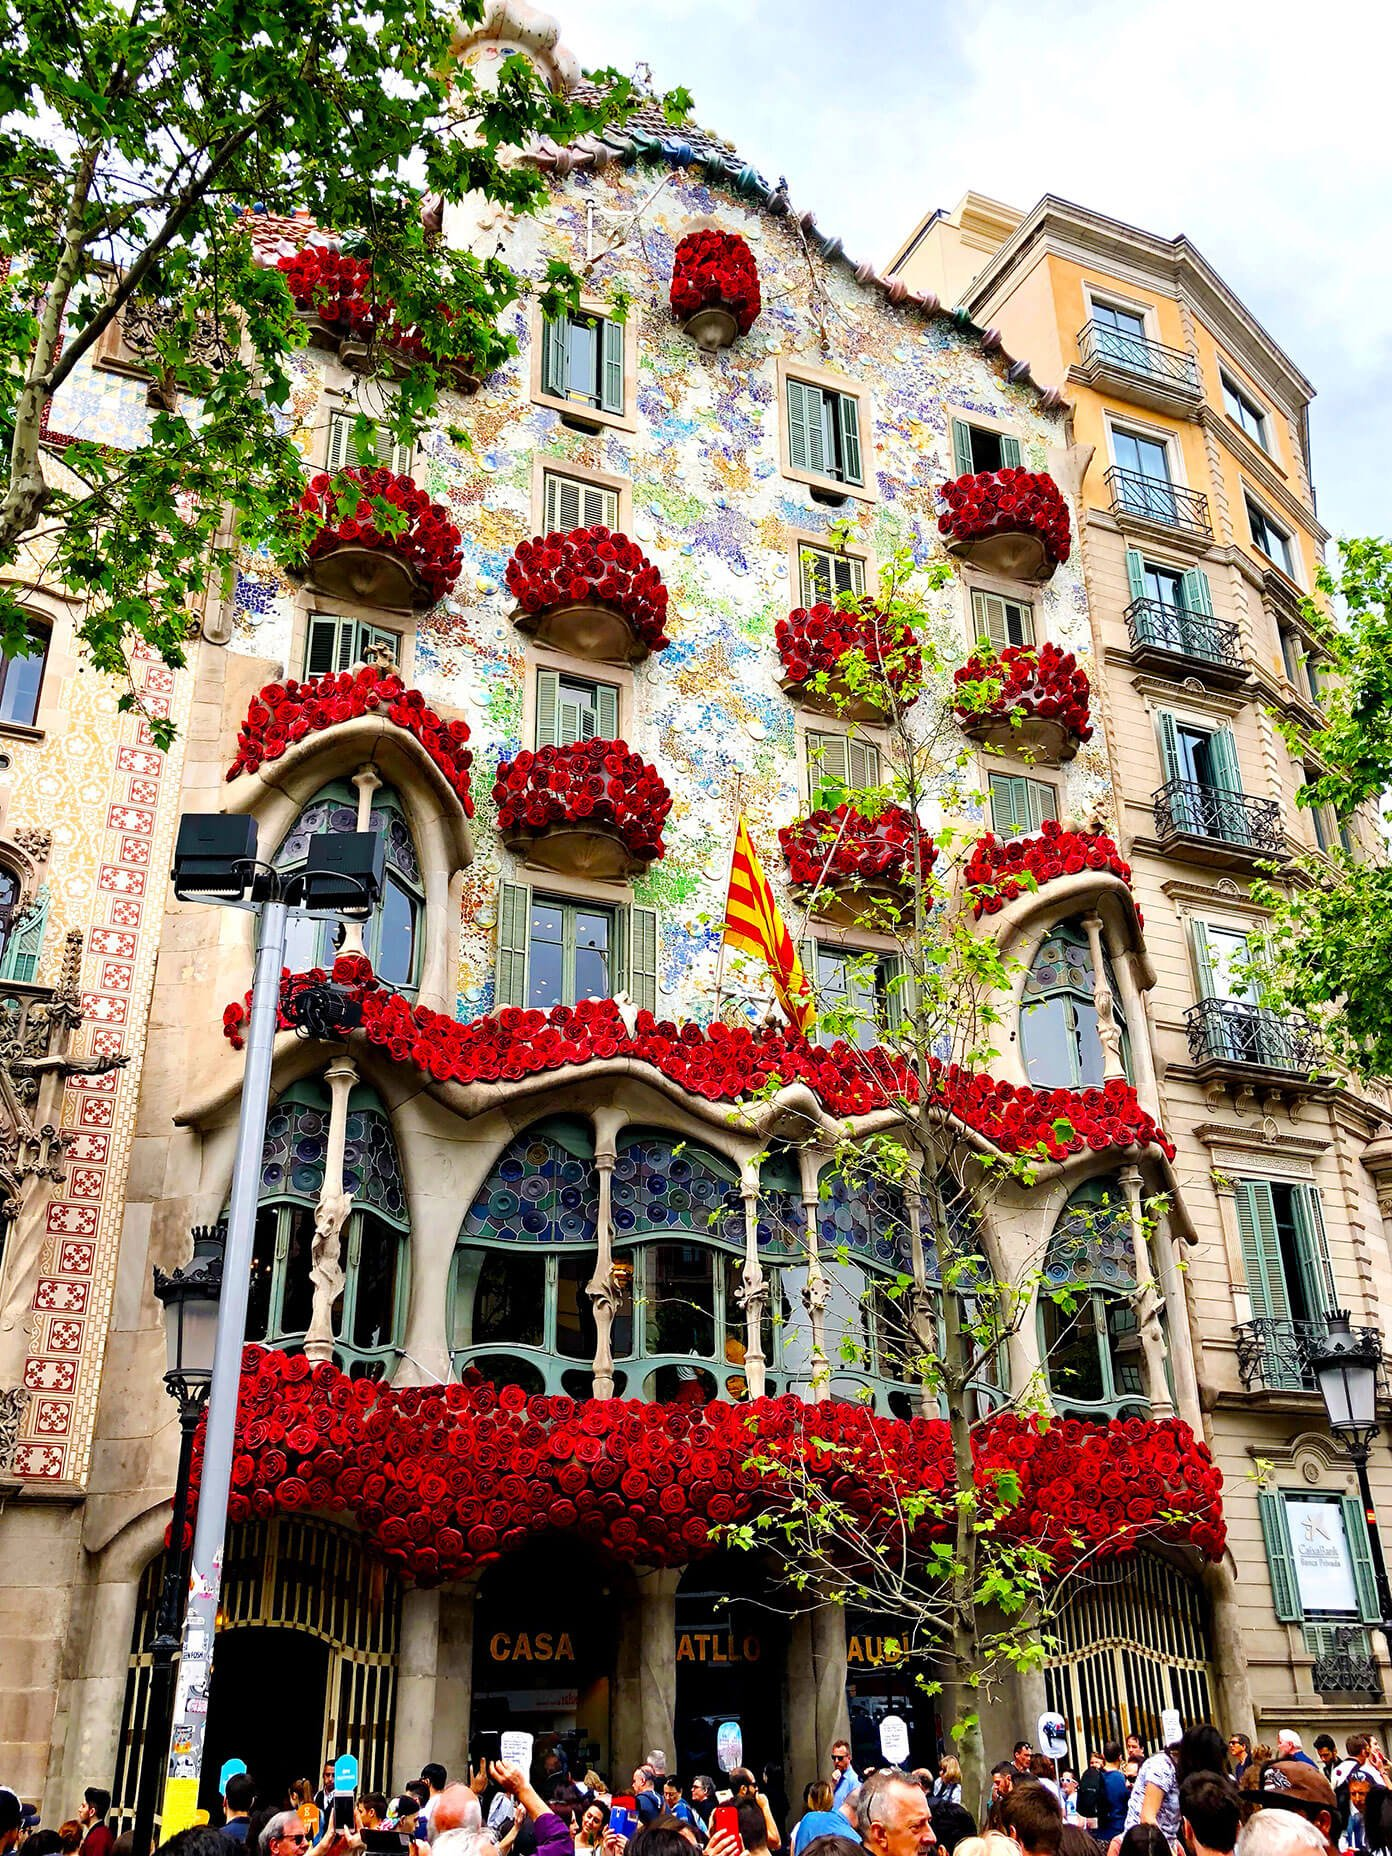 Casa Battlo in Barcelona on Sant Jordi Day